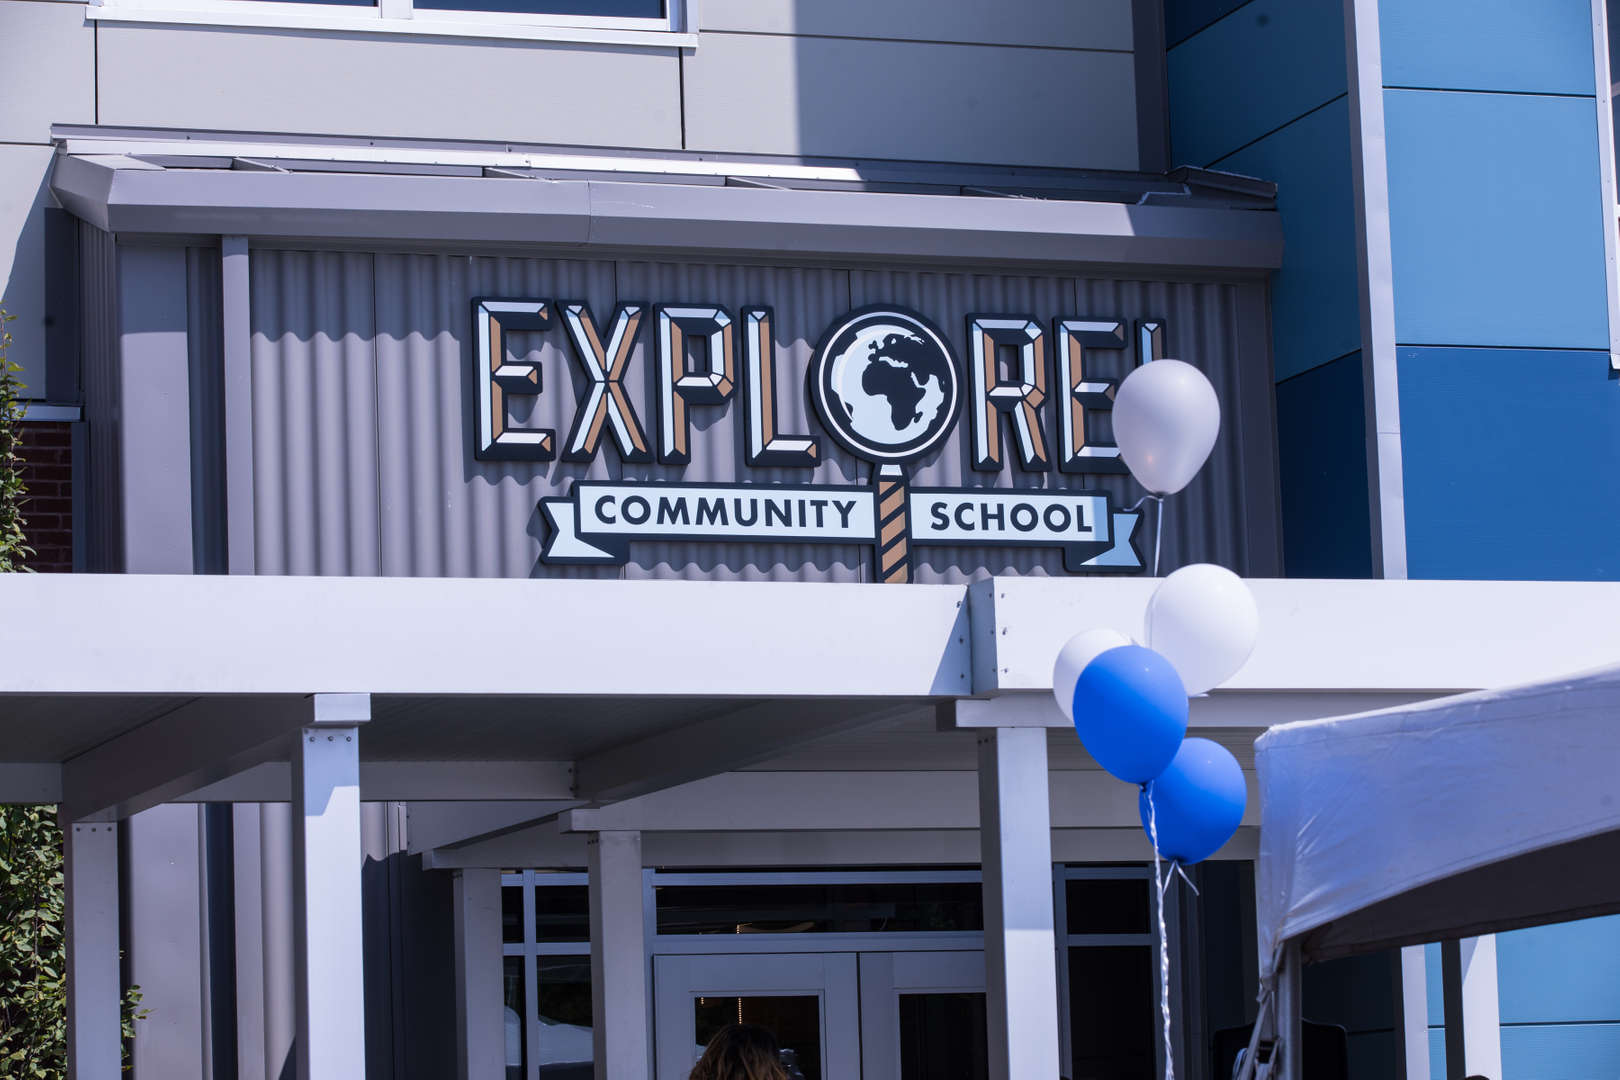 Explore! Community School signage on a school building